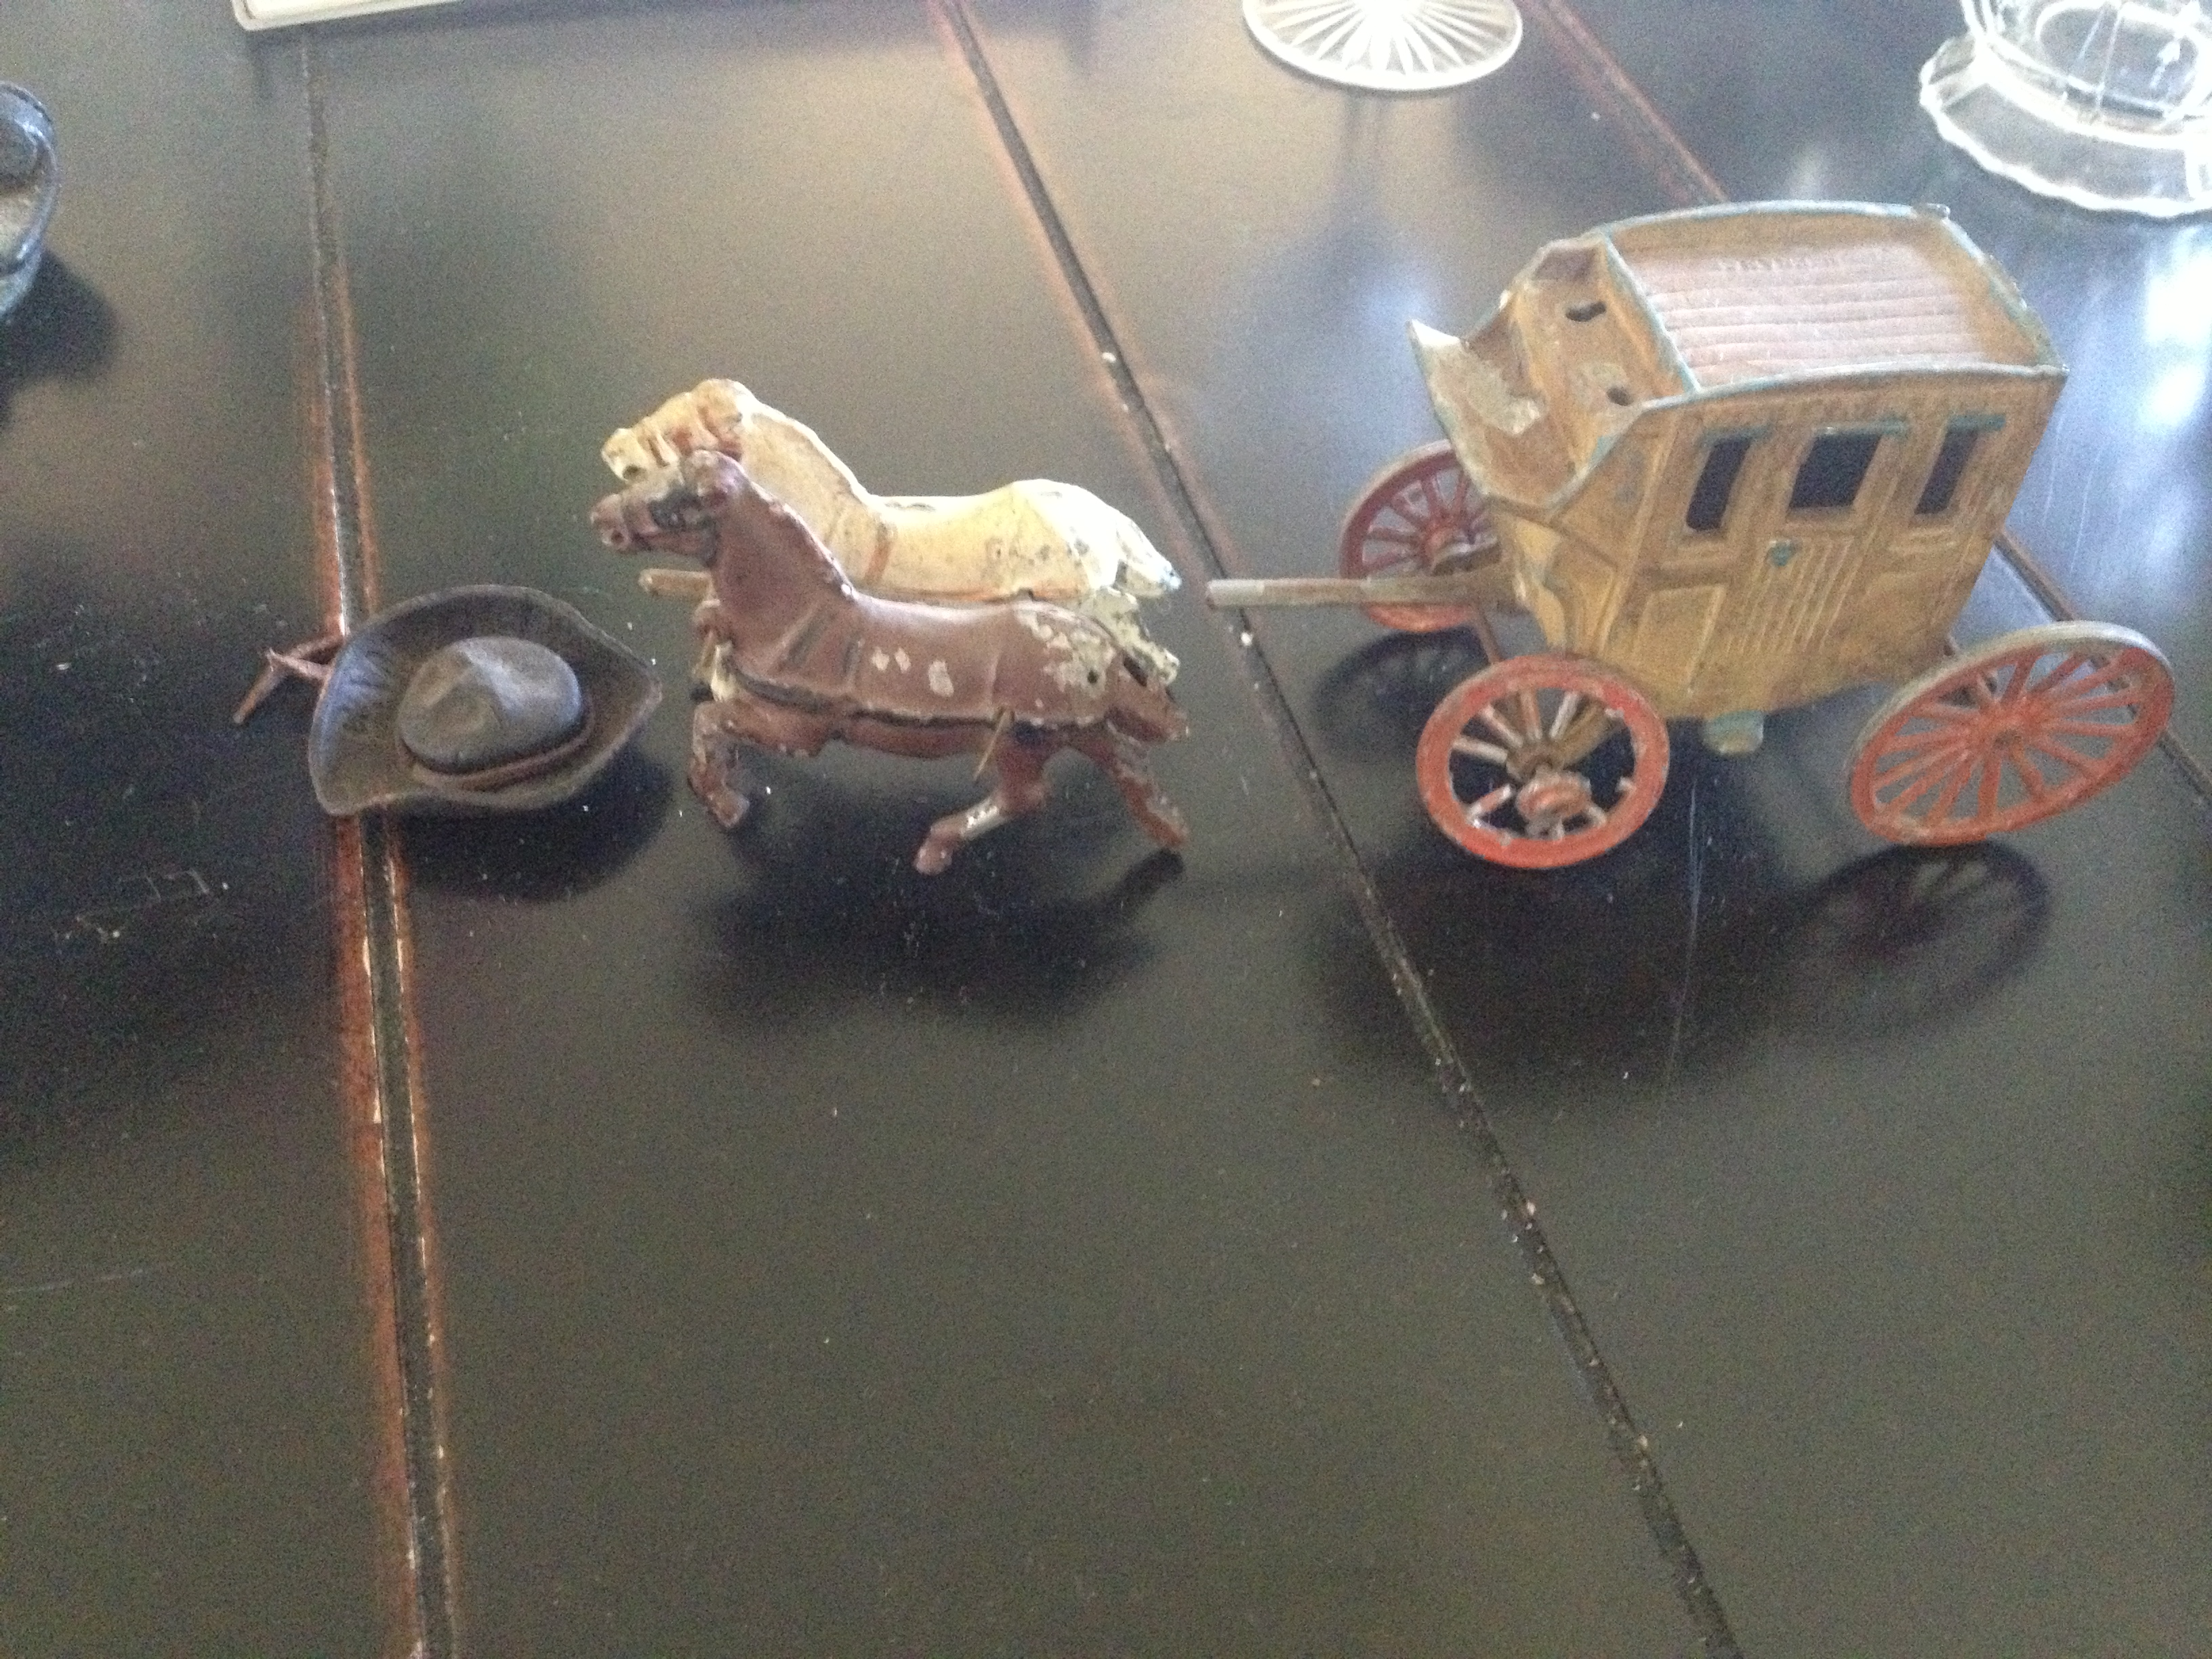 Antique metal horse and wagon toys.